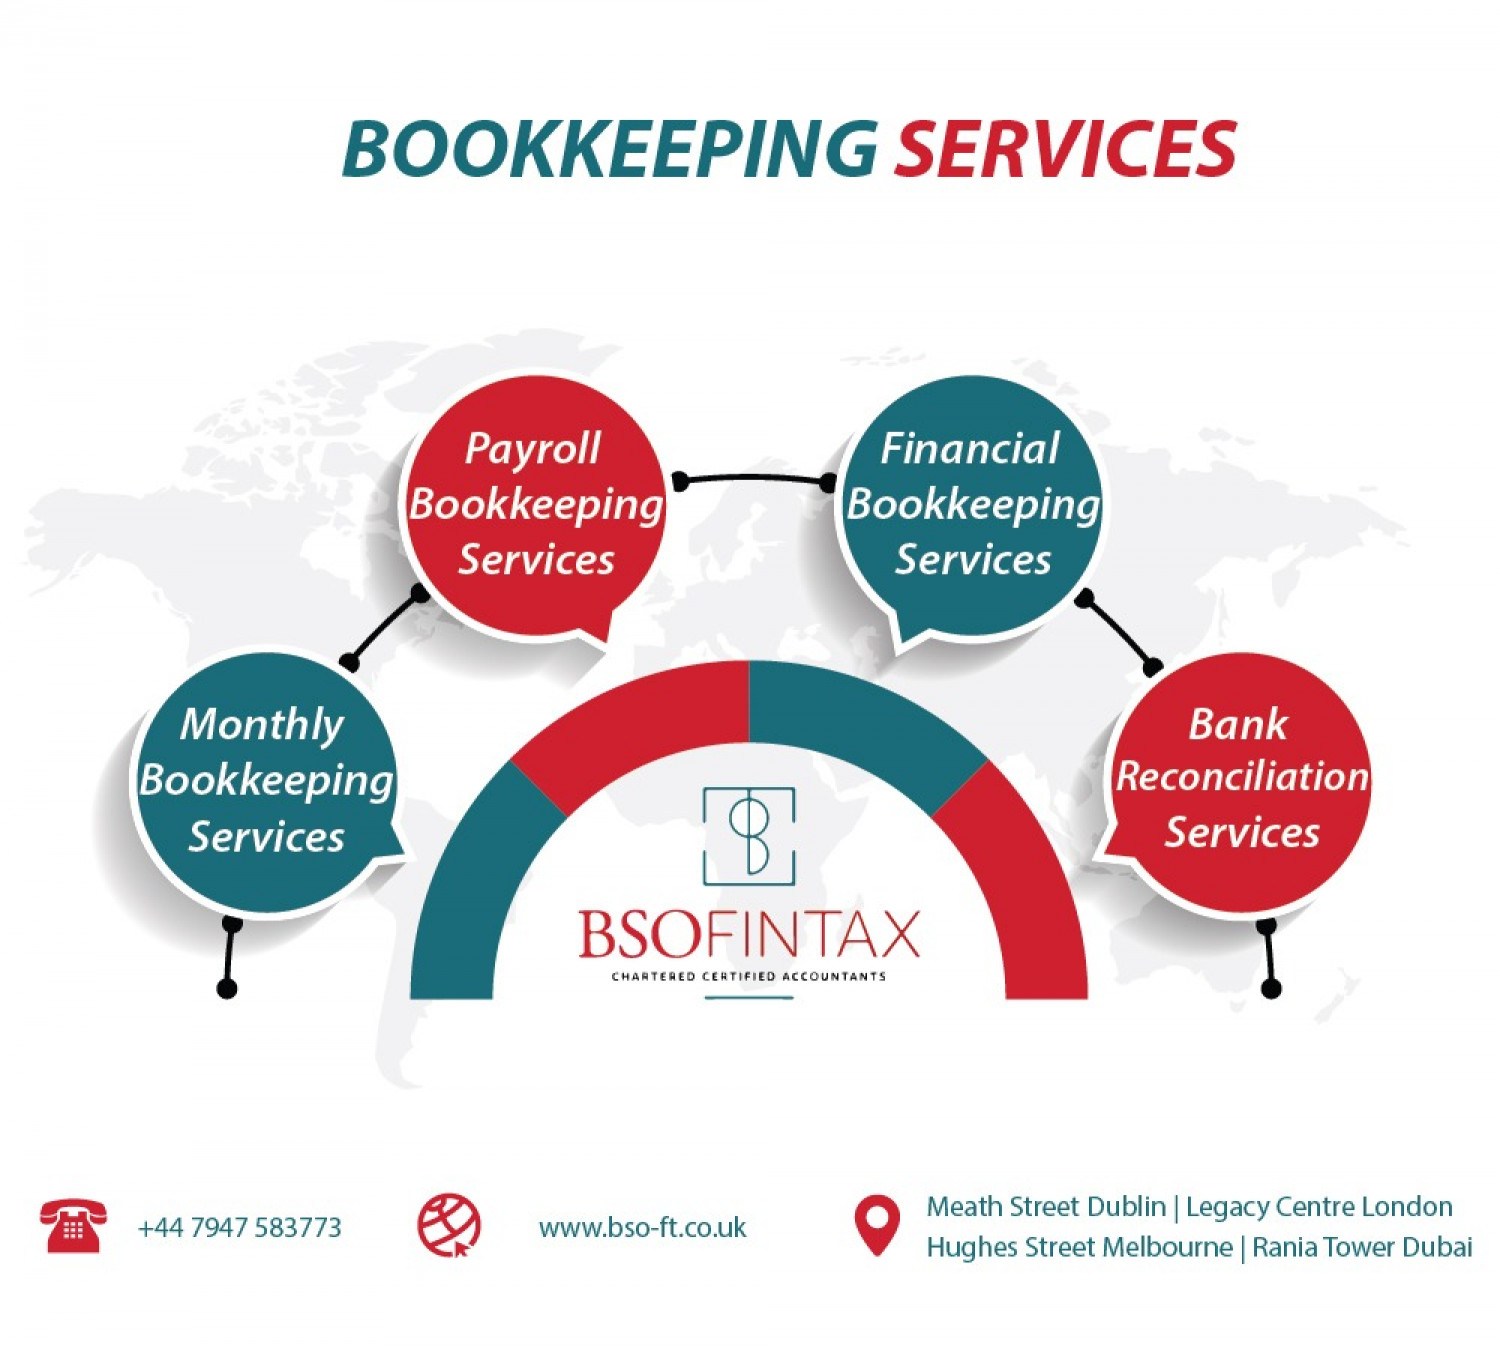 Bookkeeping Services Infographic